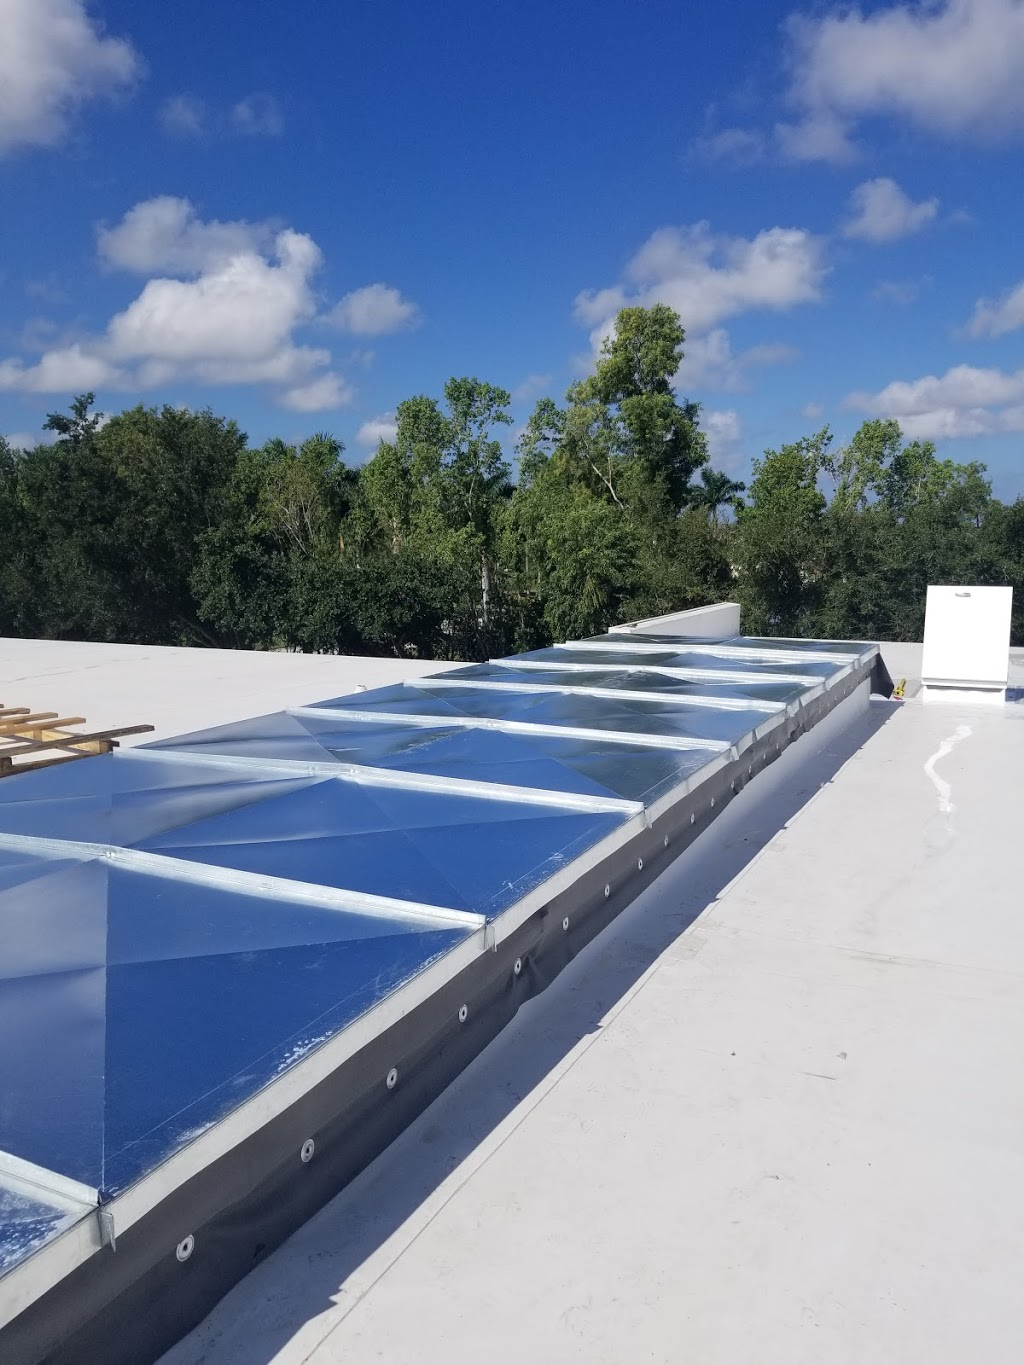 Air Duct Systems, Inc. - general contractor  | Photo 7 of 7 | Address: 2106 W Central Blvd, Orlando, FL 32805, USA | Phone: (407) 839-3313